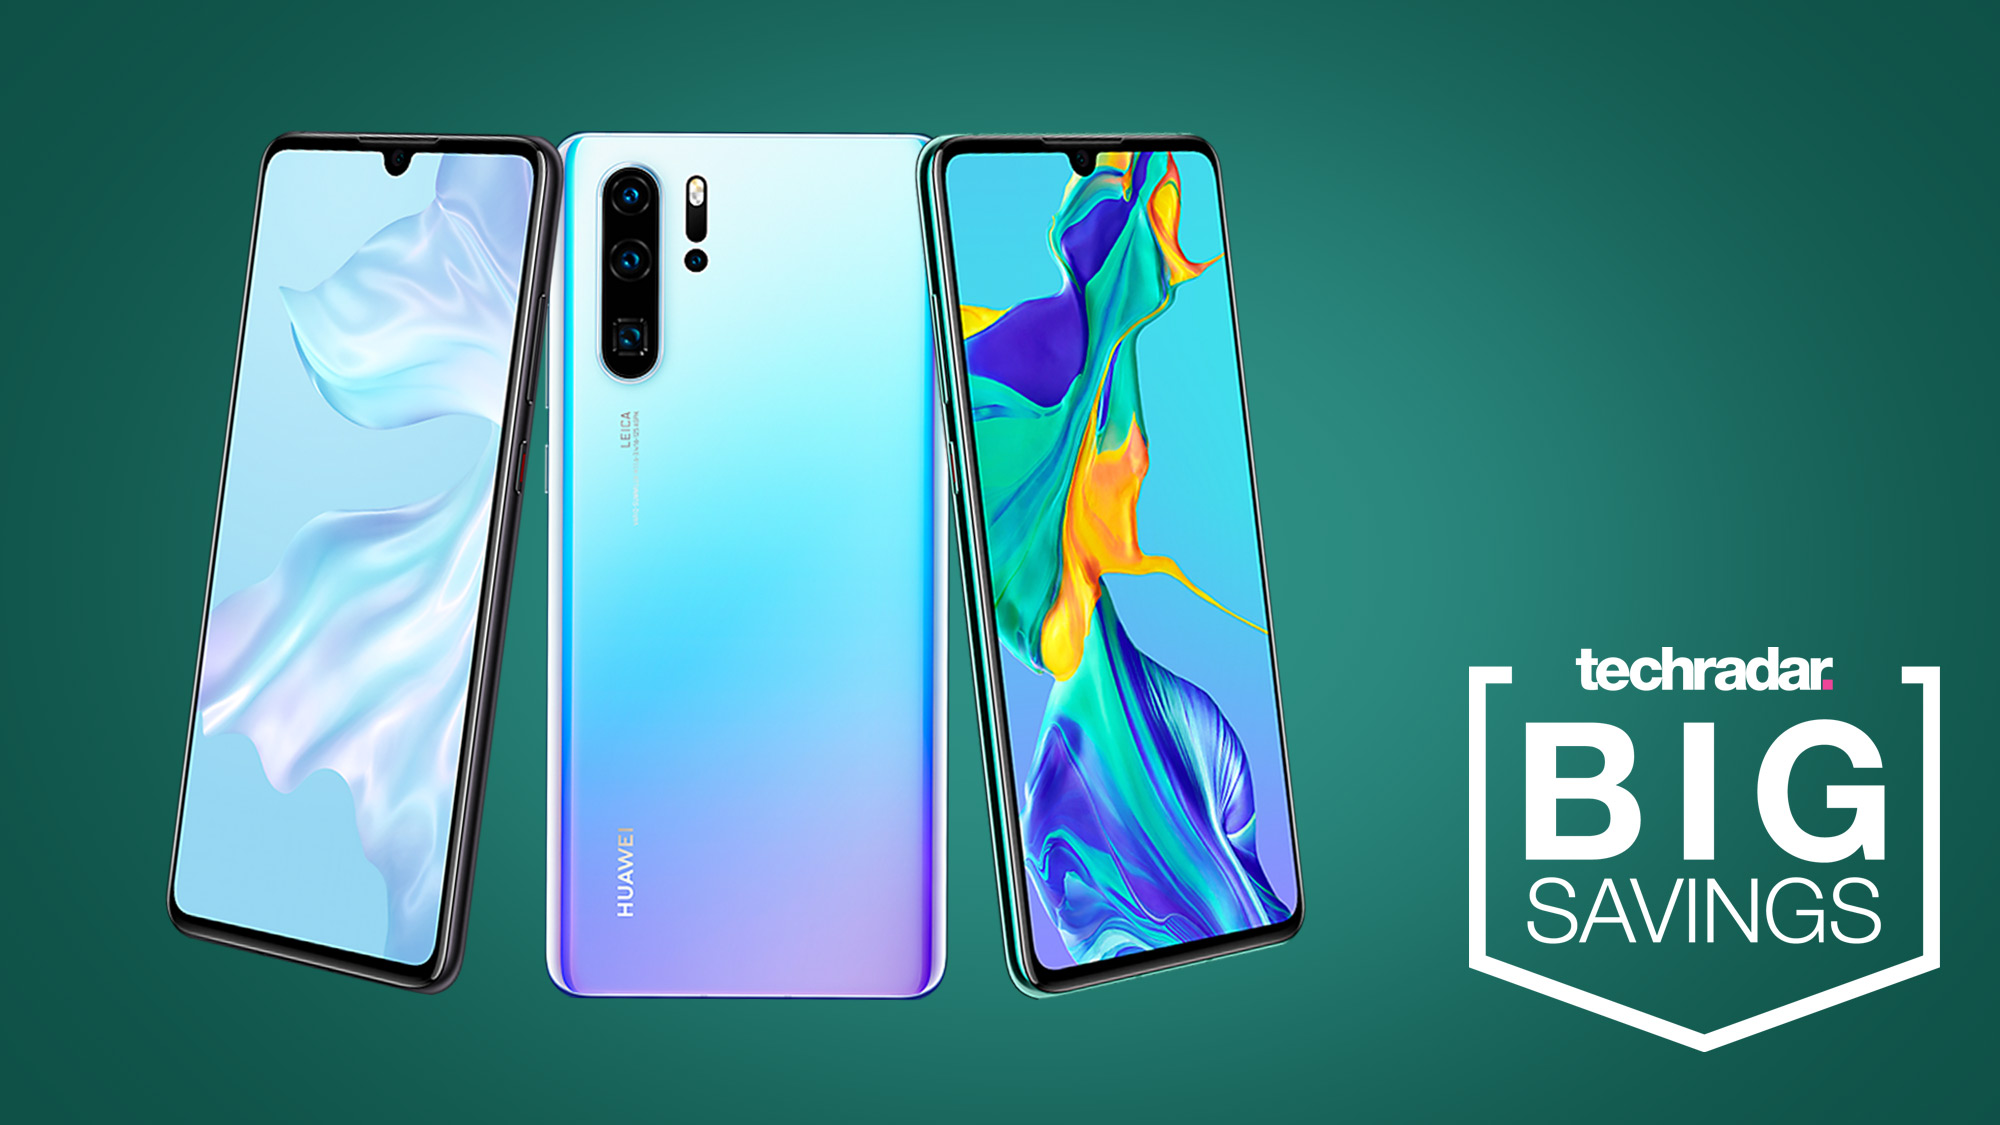 The best Huawei P30 deal on the market just hit its lowest price yet at £25 a month